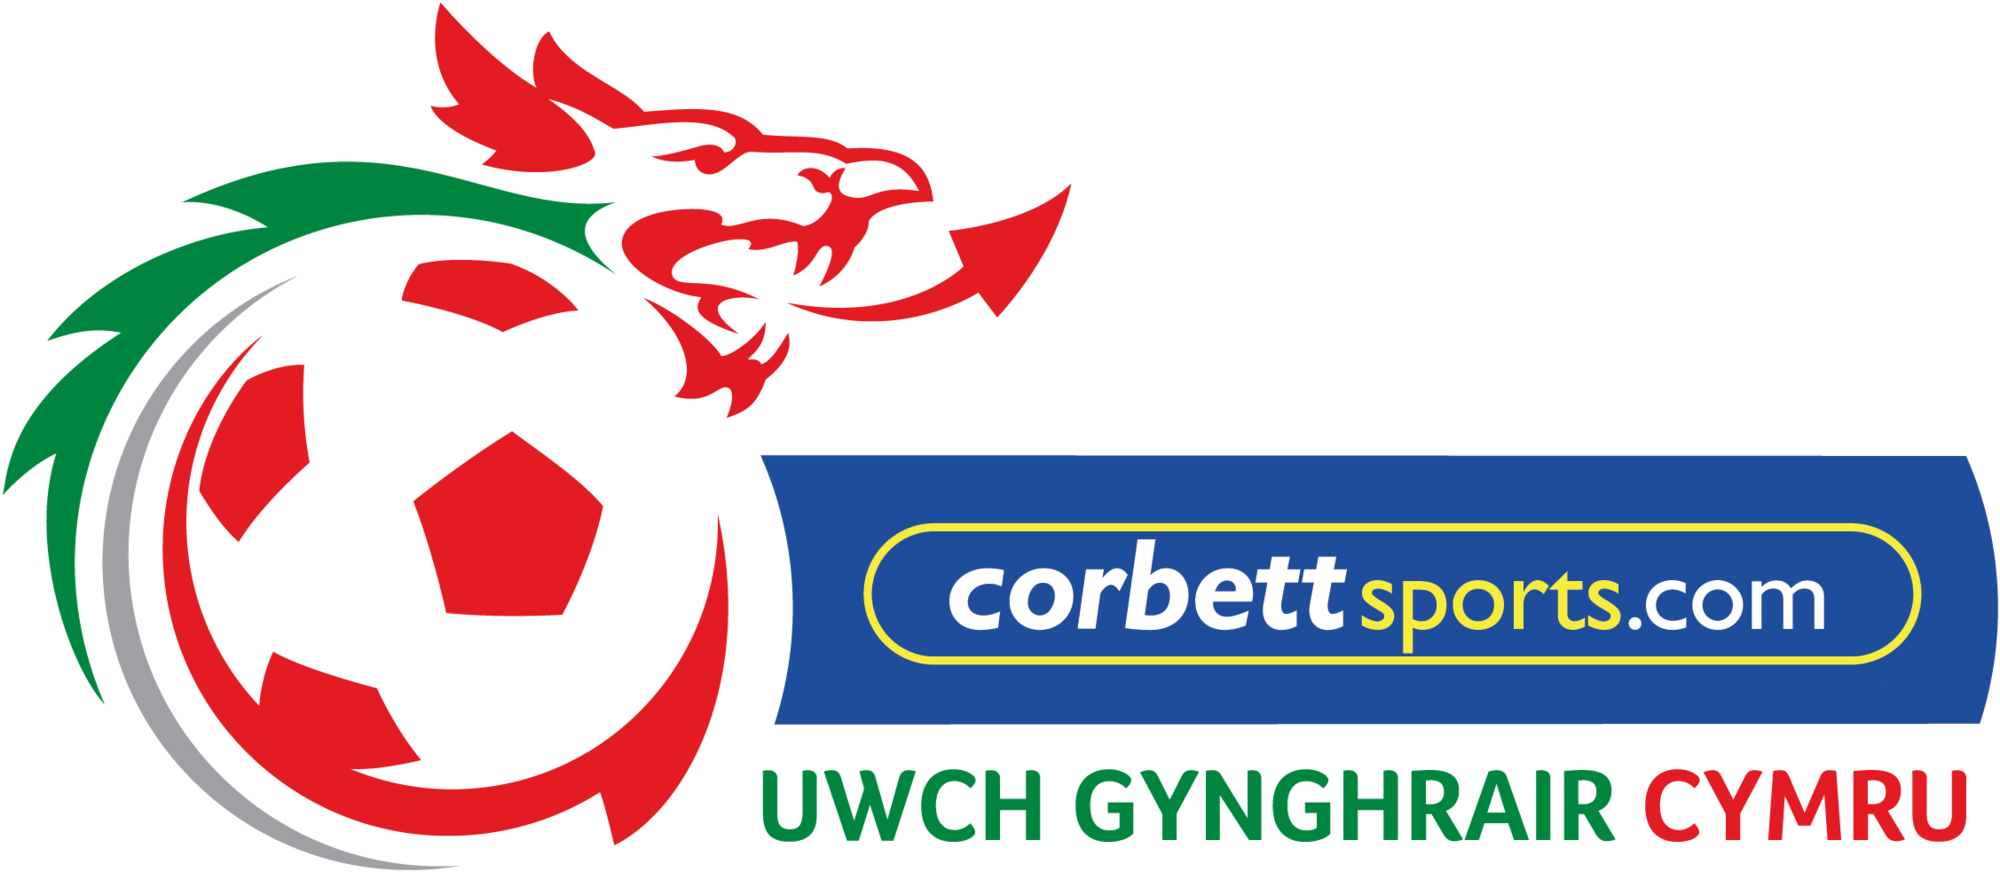 download welsh premier league logo jd welsh premier league png image with no background pngkey com pngkey